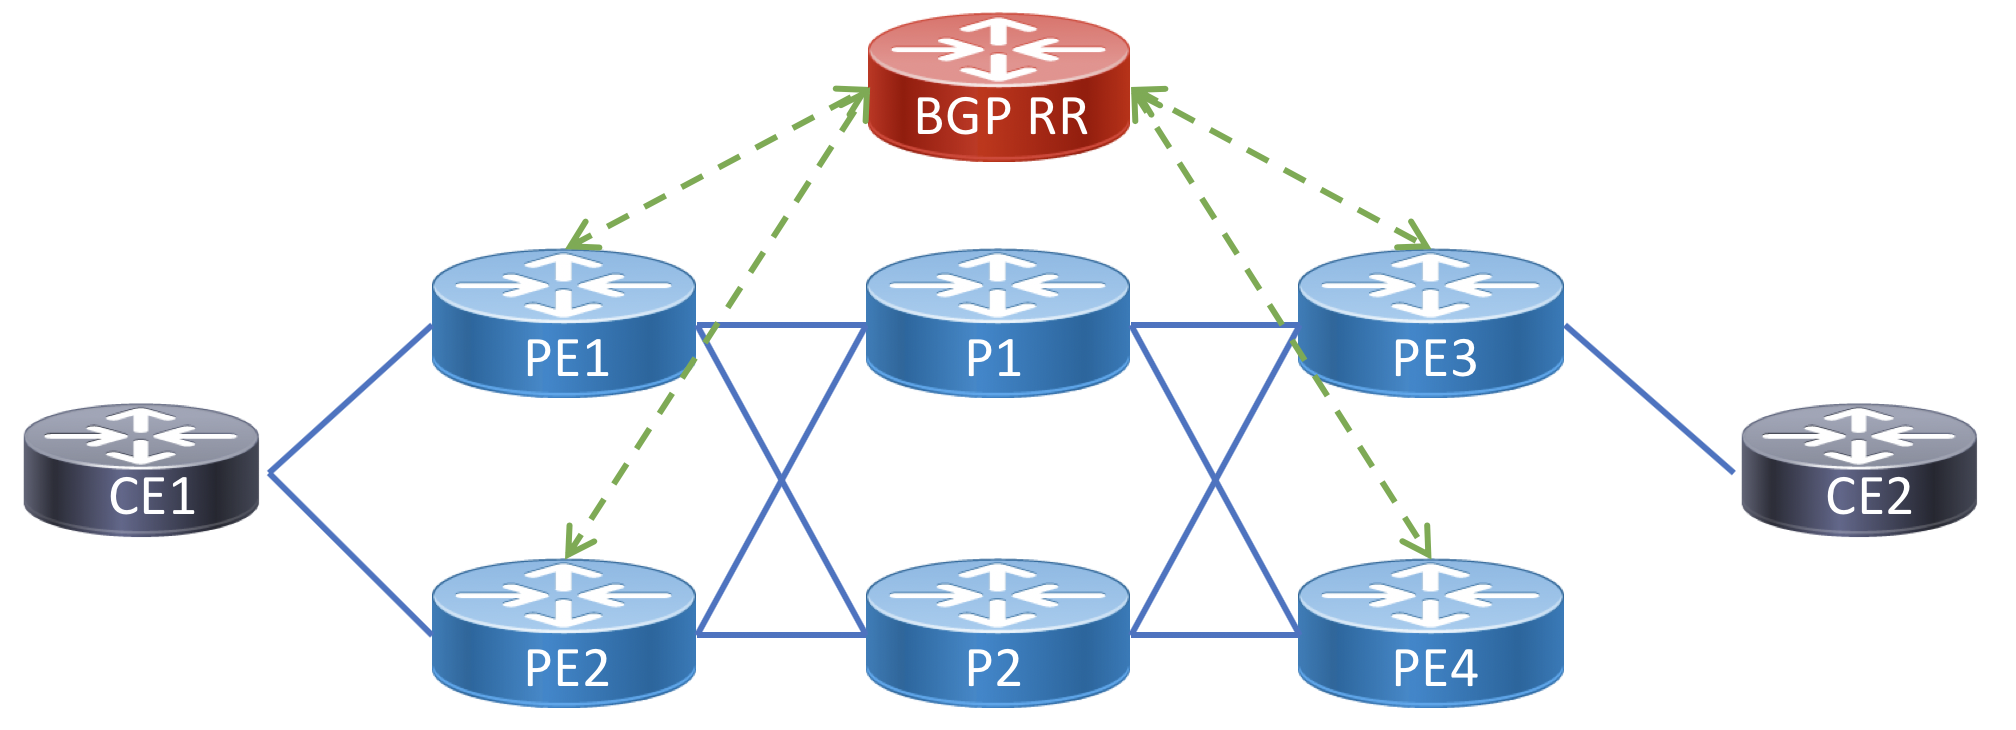 ixp-base-topology.png